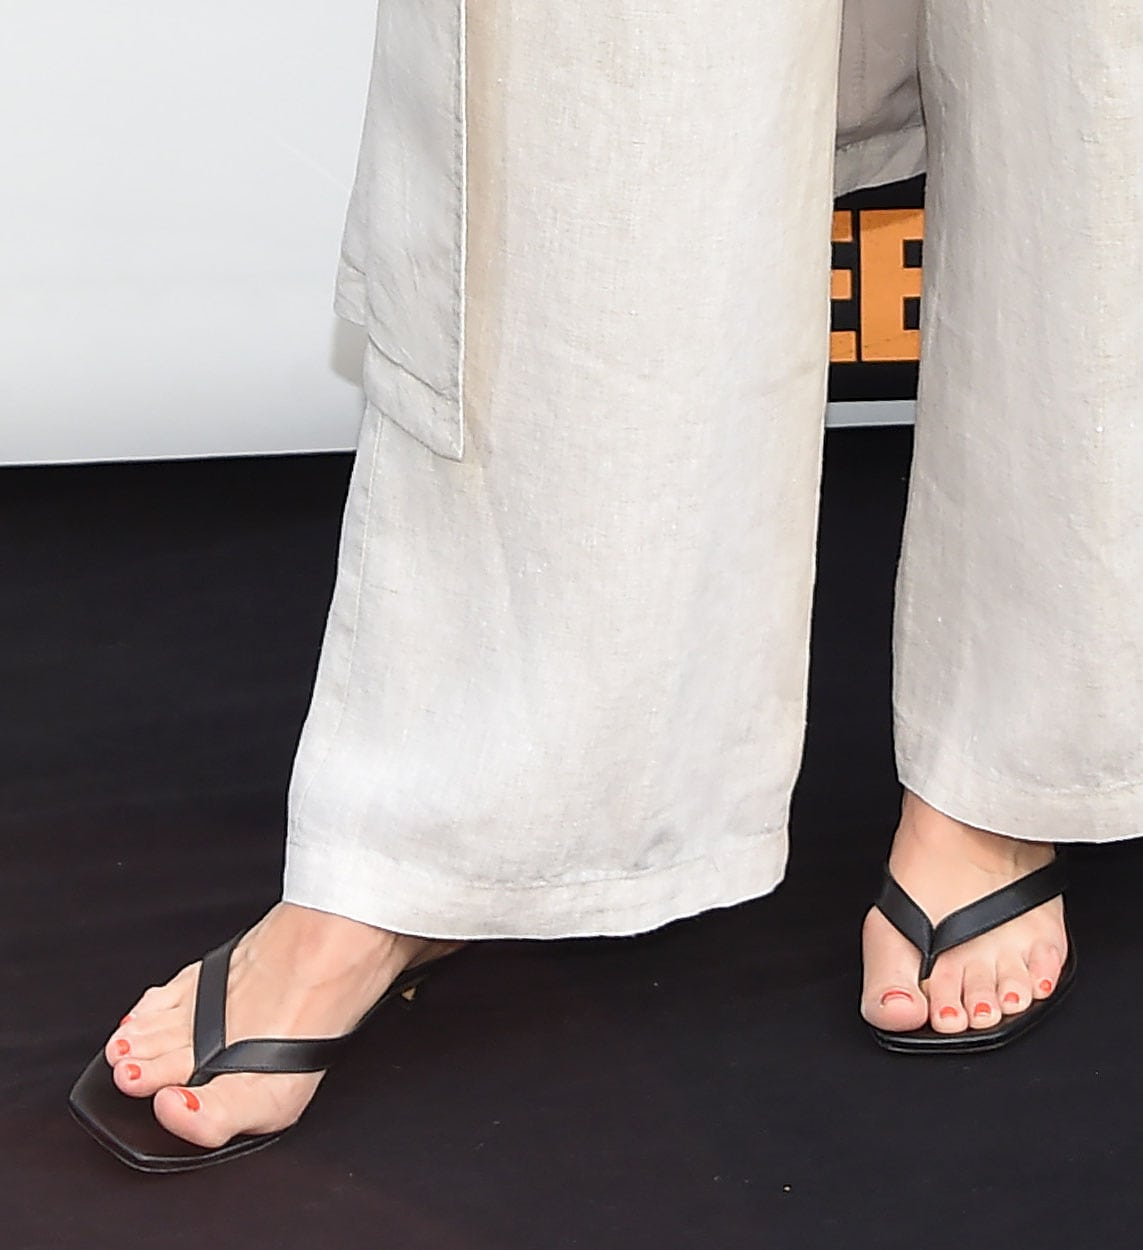 Kristen Bell shows off her red pedicure and feet in black thong square-toe sandals